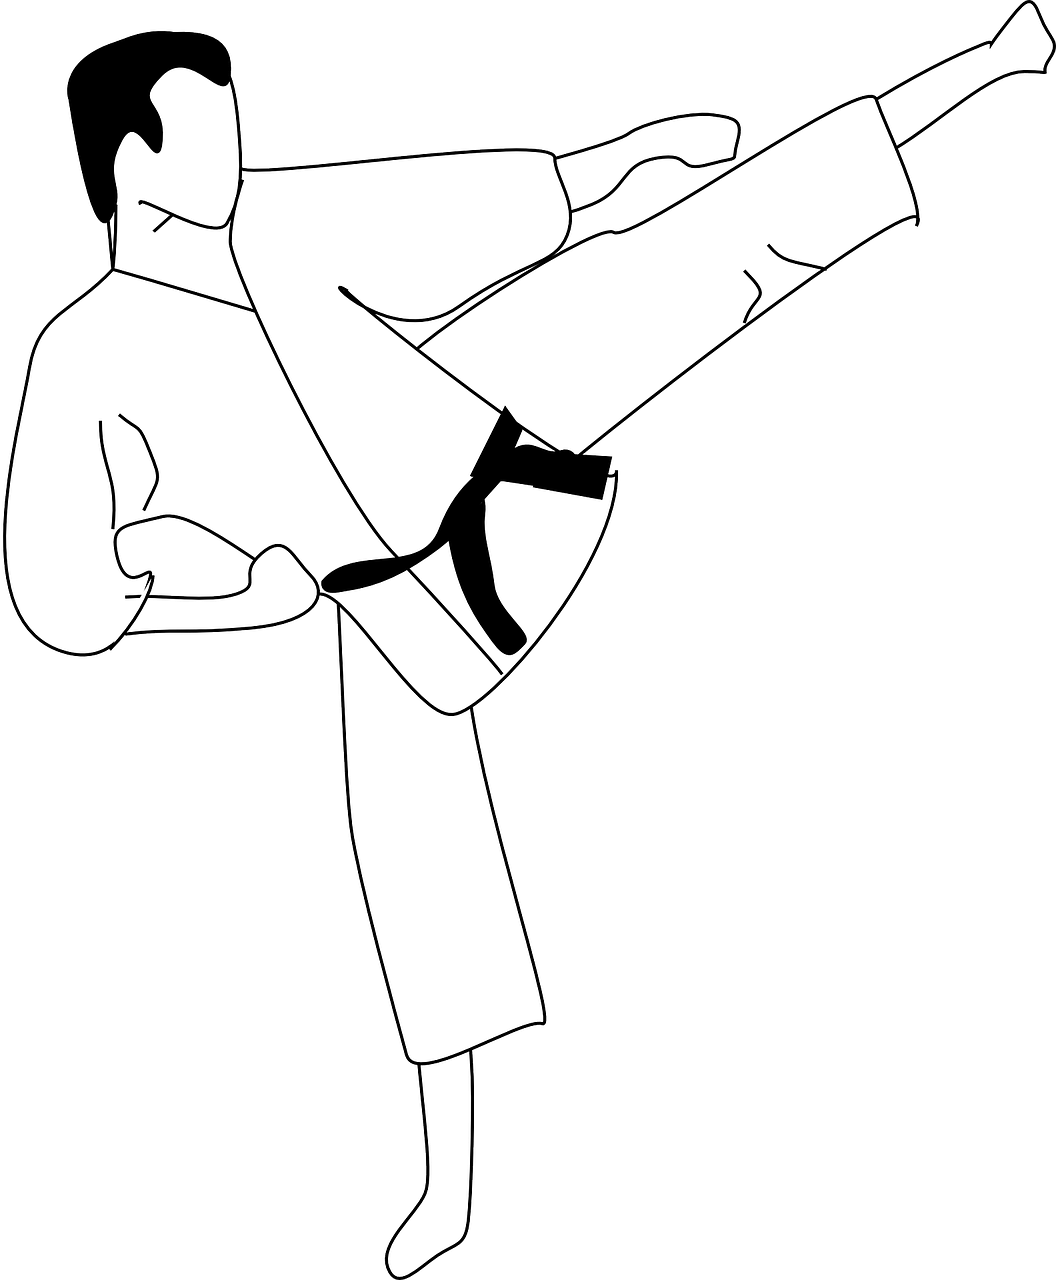 karate,kick,sports,defense,martial art,attack,practice,combat,uniform,kimono,black belt,male,fight,man,kicking,free vector graphics,free pictures, free photos, free images, royalty free, free illustrations, public domain